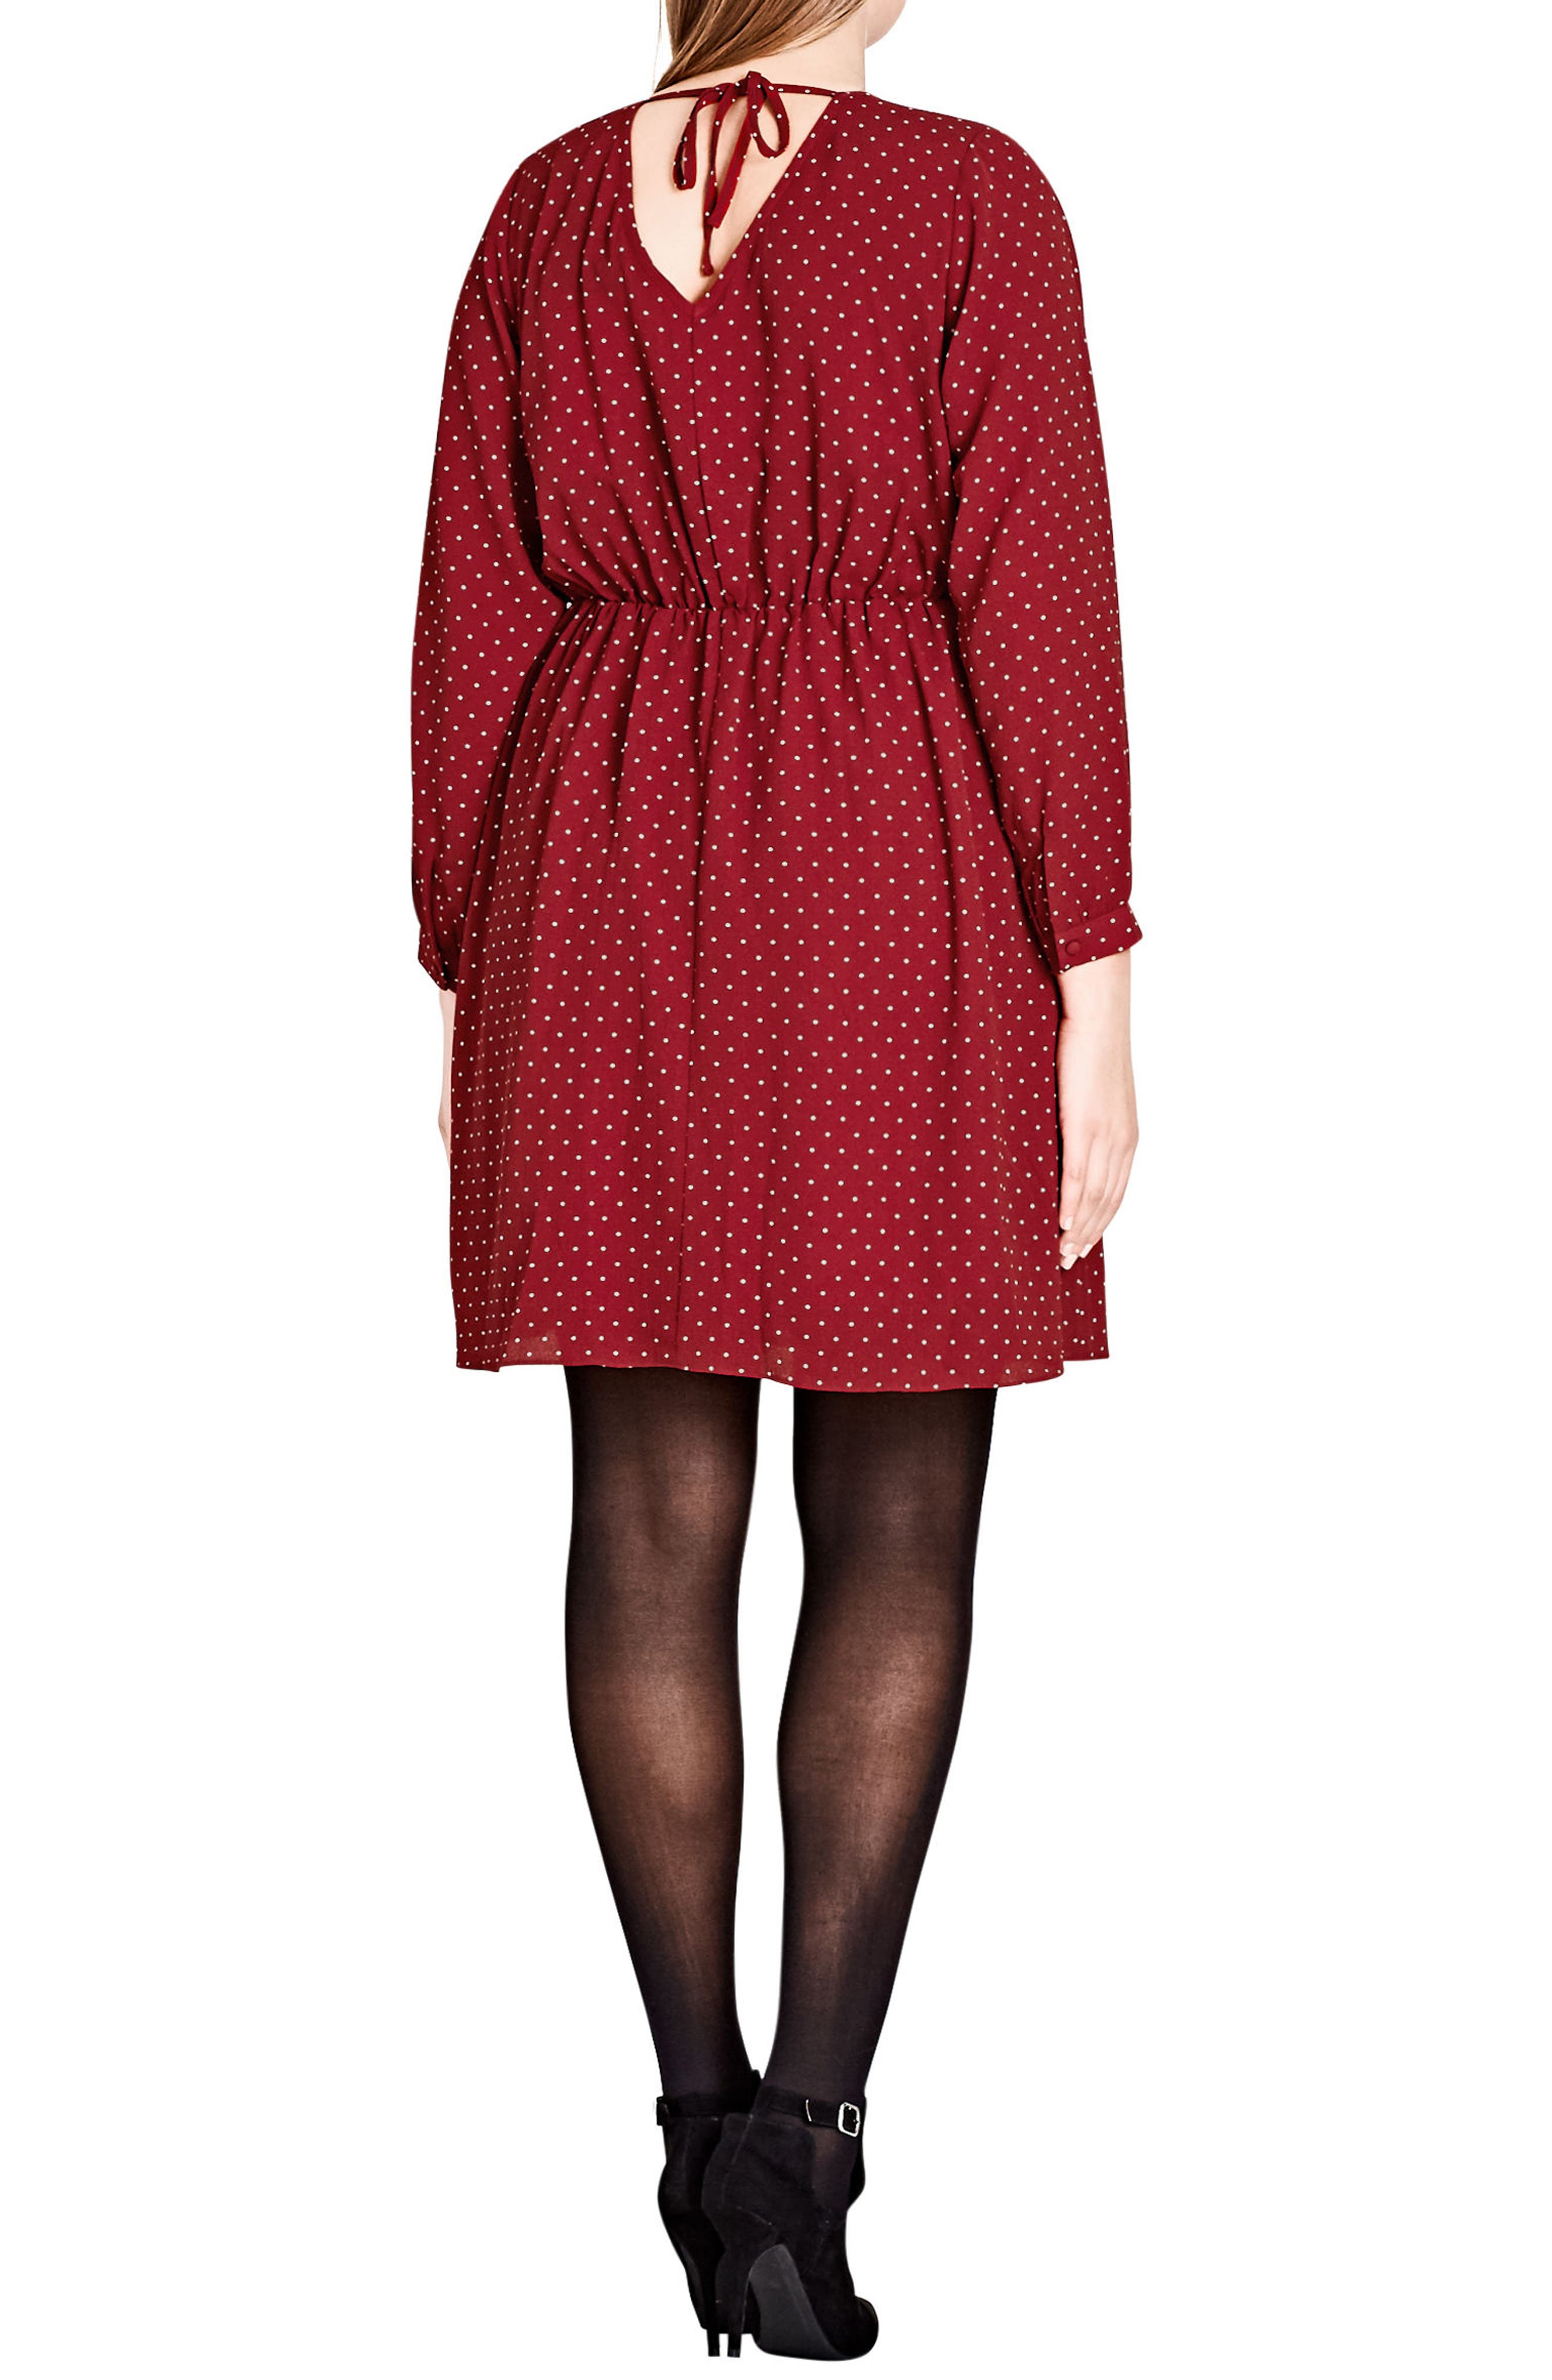 Sweet Nothing Polka Dot Dress,                             Alternate thumbnail 2, color,                             Red Rose